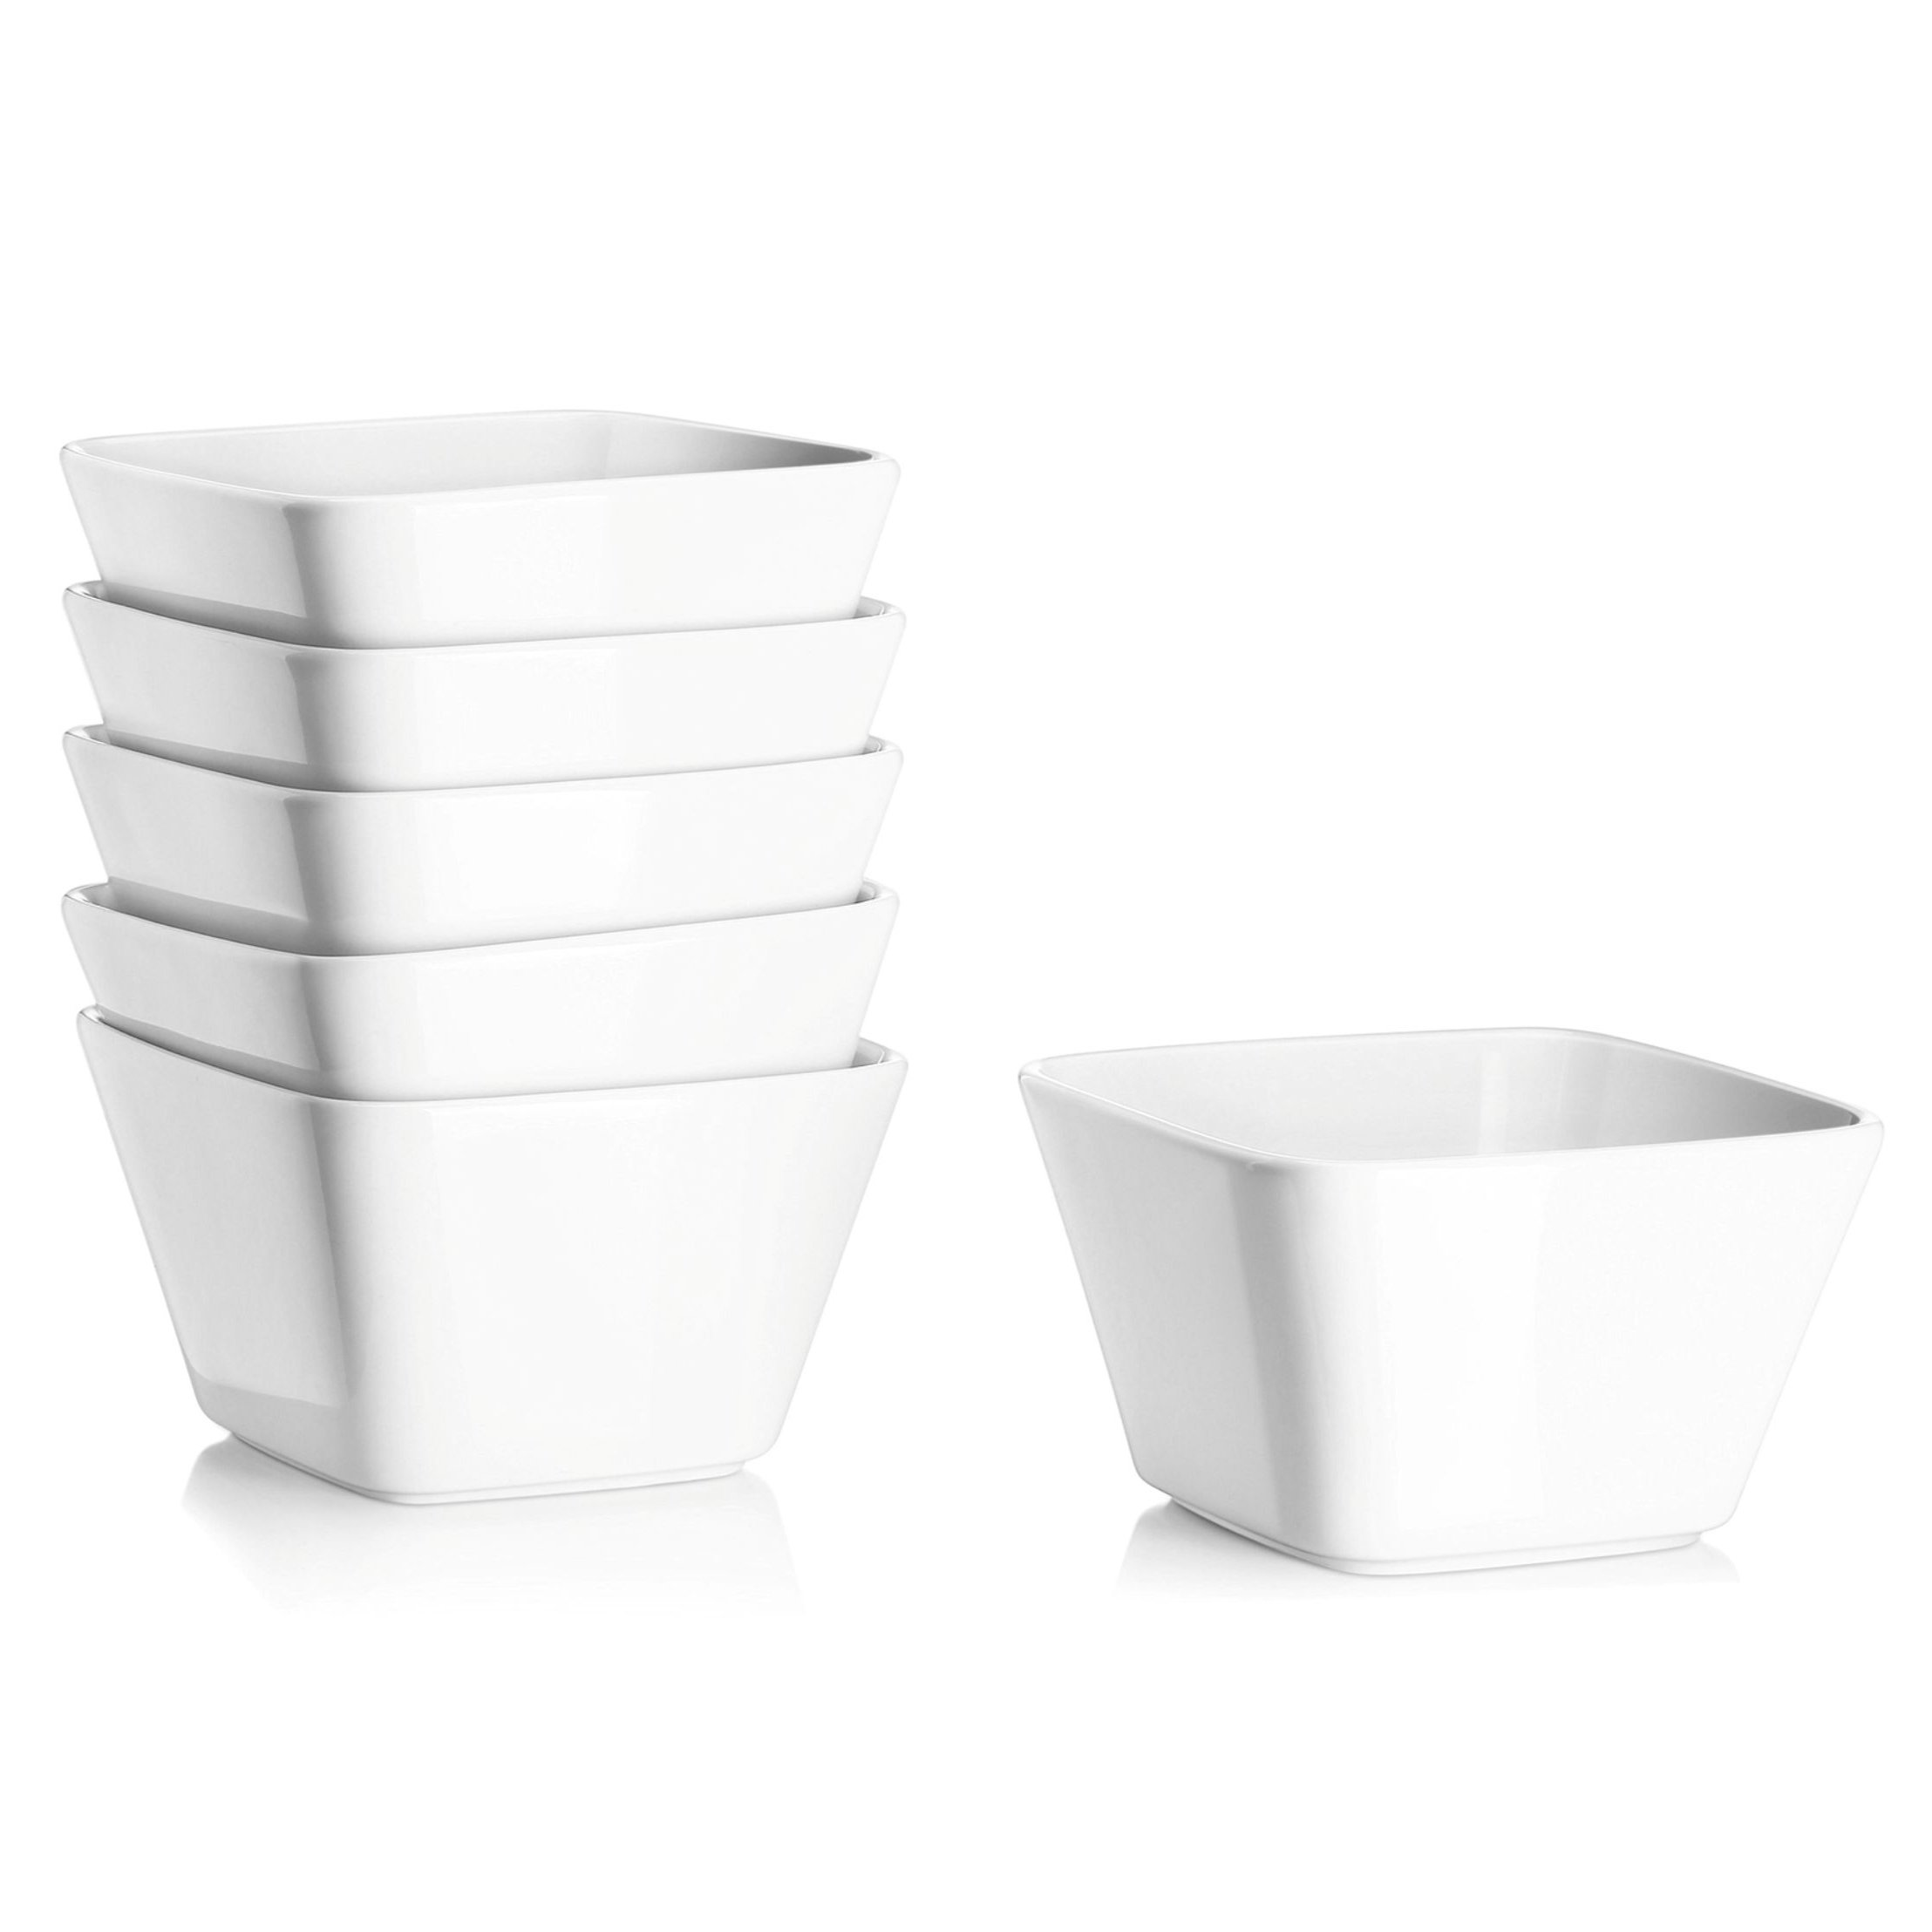 DOWAN 20 Ounce Porcelain Square Cereal Bowls - 6 Packs ,White